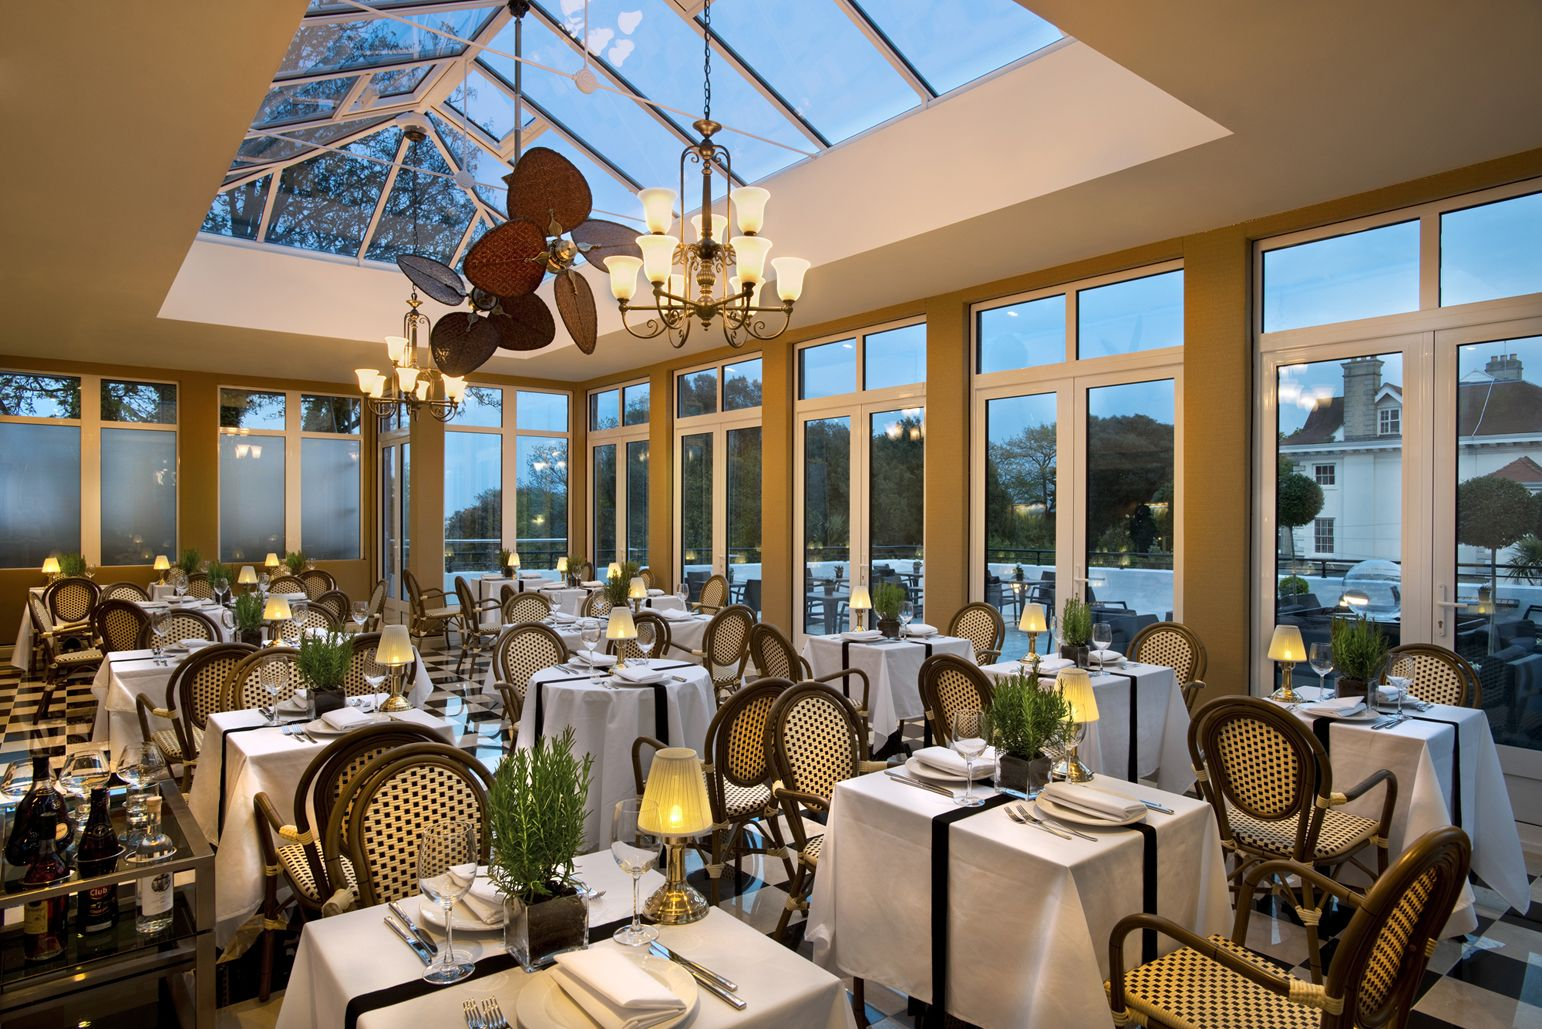 The Conservatory at The Duke of Richmond hotel offers